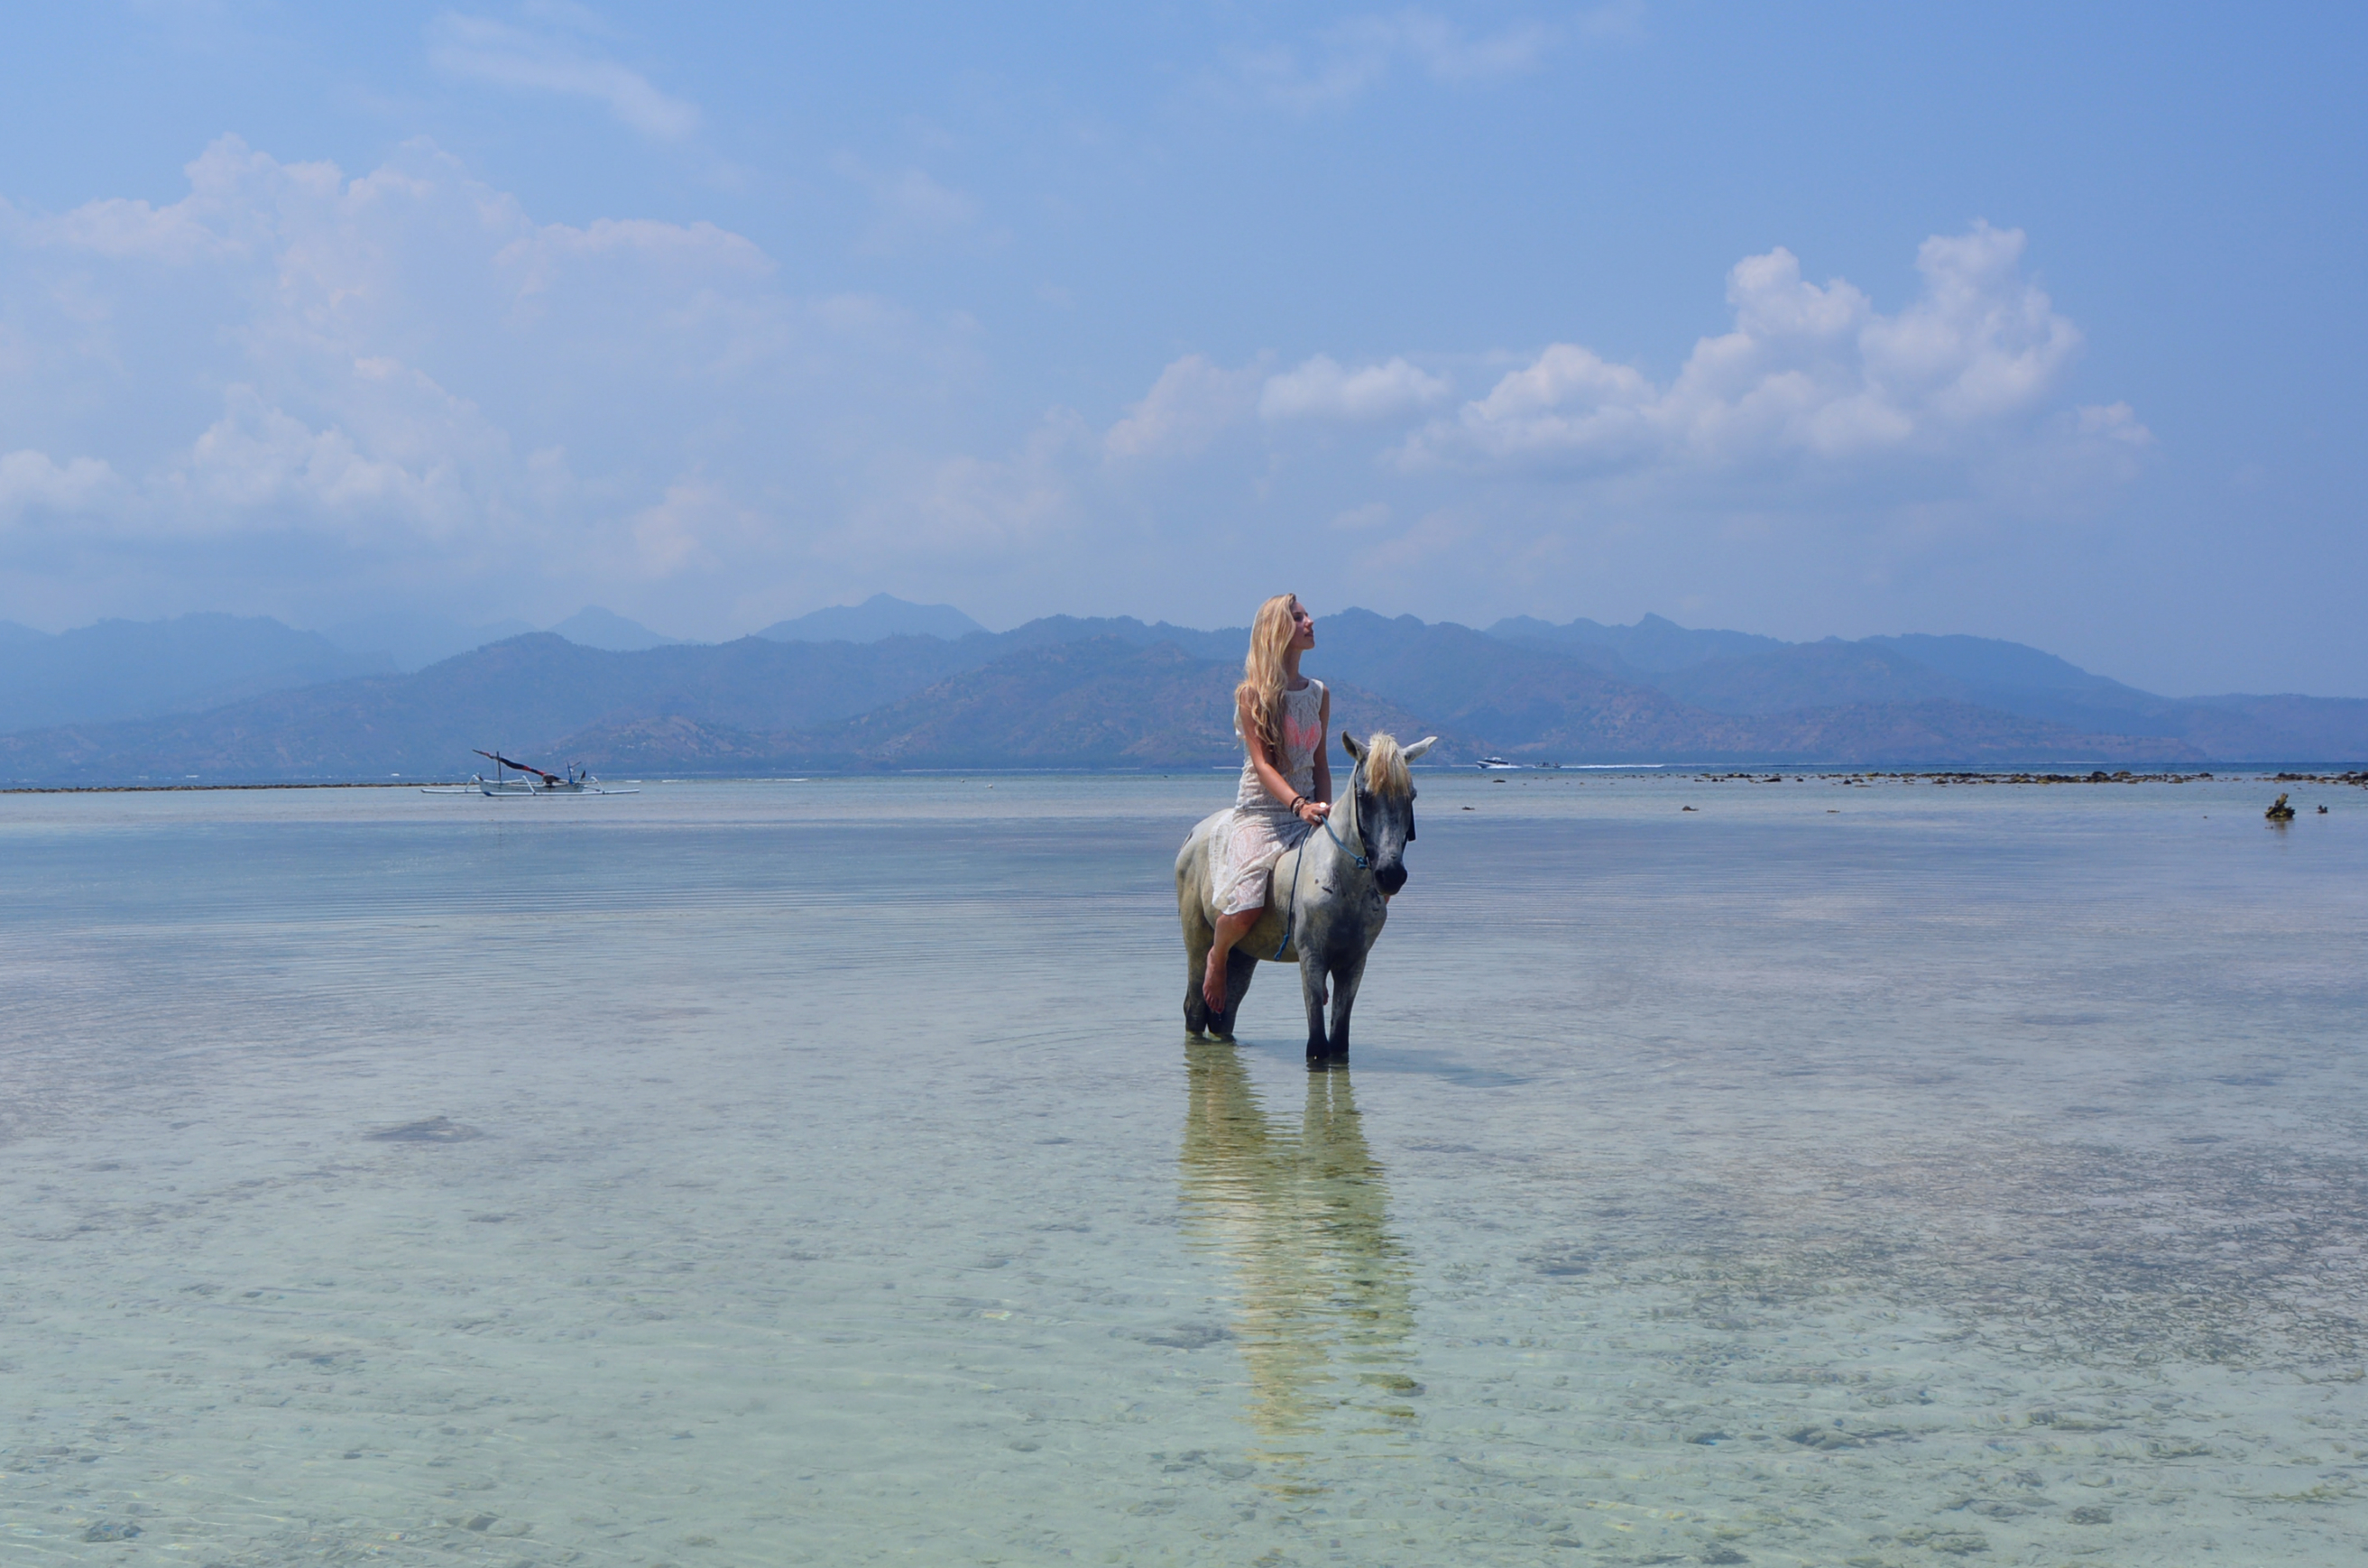 Gili trawangan beach horse riding